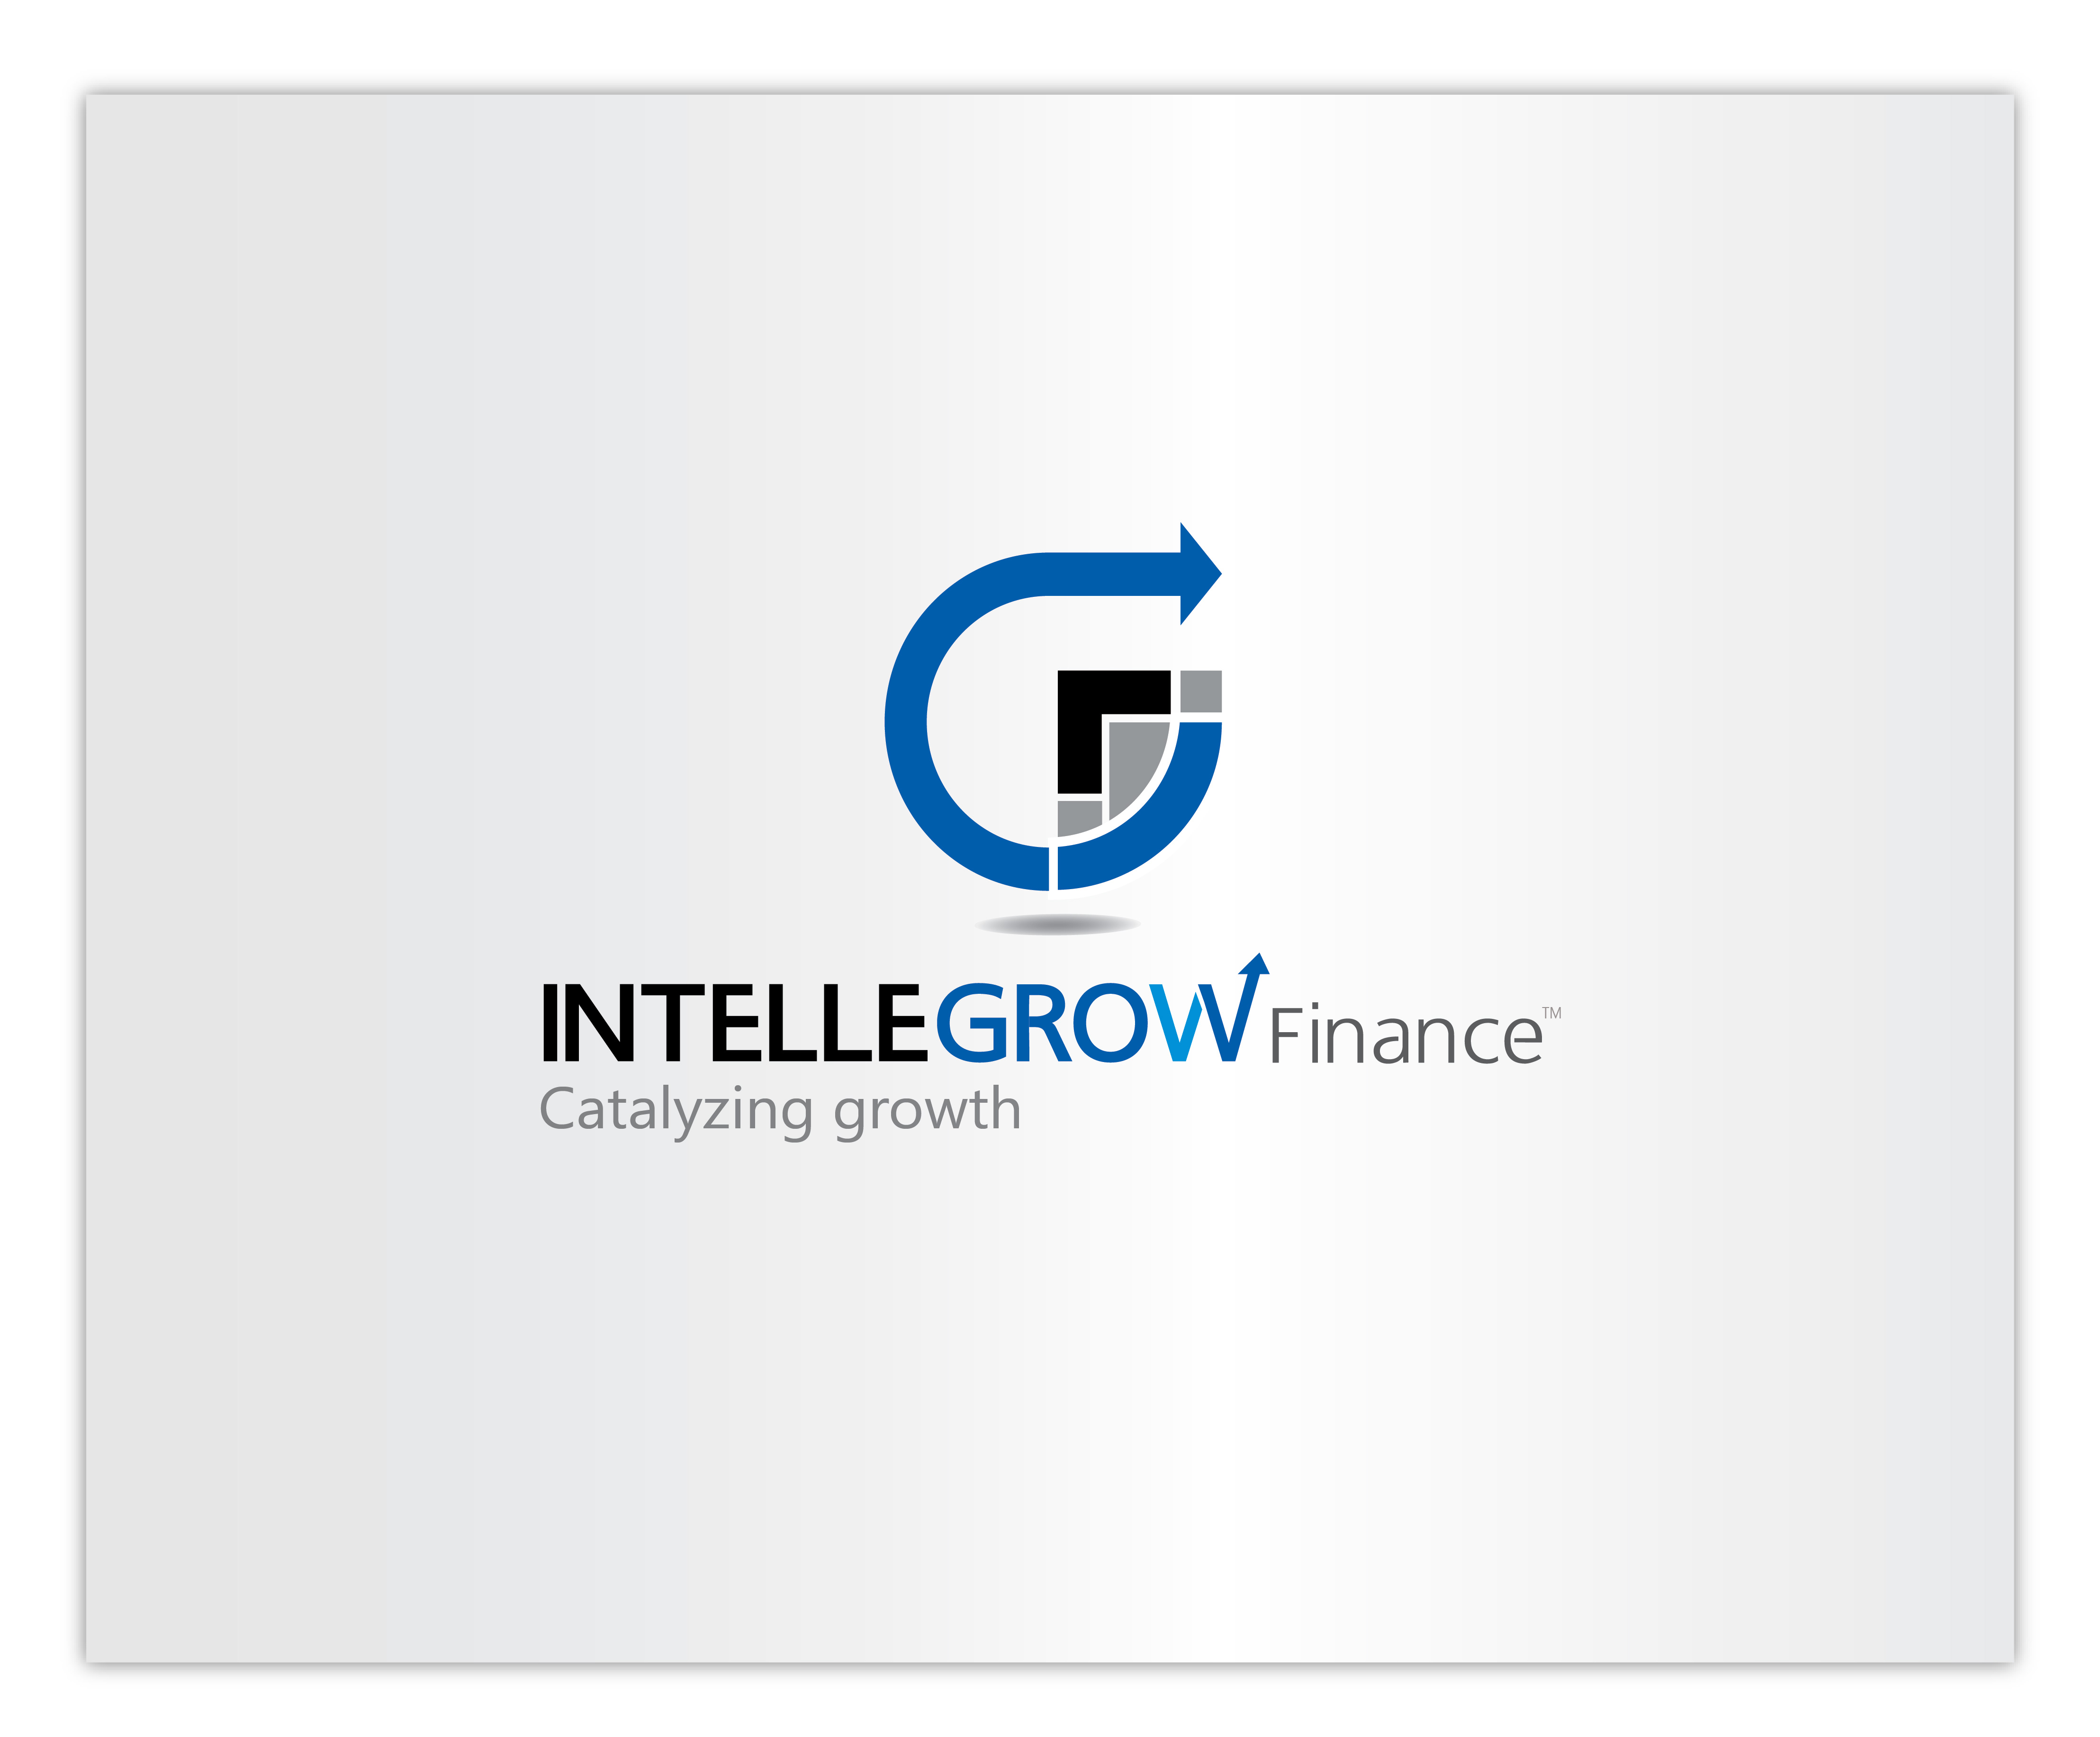 Logo Design by kowreck - Entry No. 204 in the Logo Design Contest Logo Design Needed for Exciting New Company IntelleGrow Finance Pvt. Ltd..